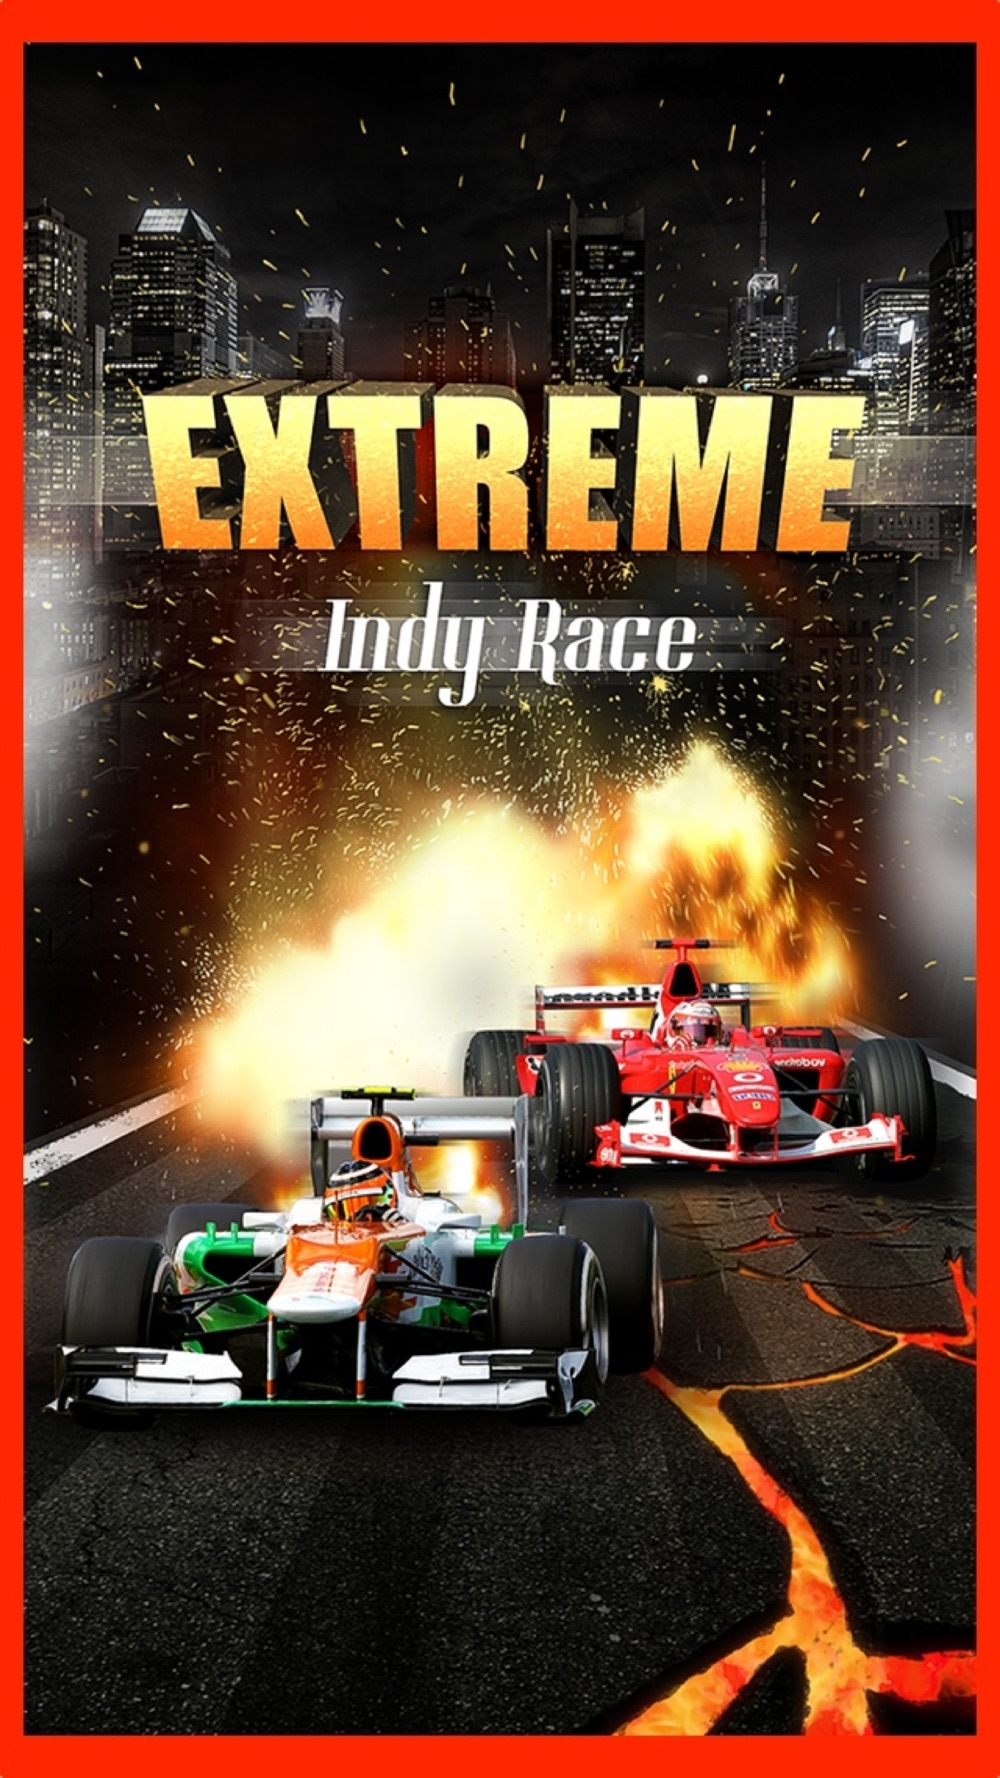 An Extreme 3D Indy Car Race Fun Free High Speed Real Racing Game Cheat Codes